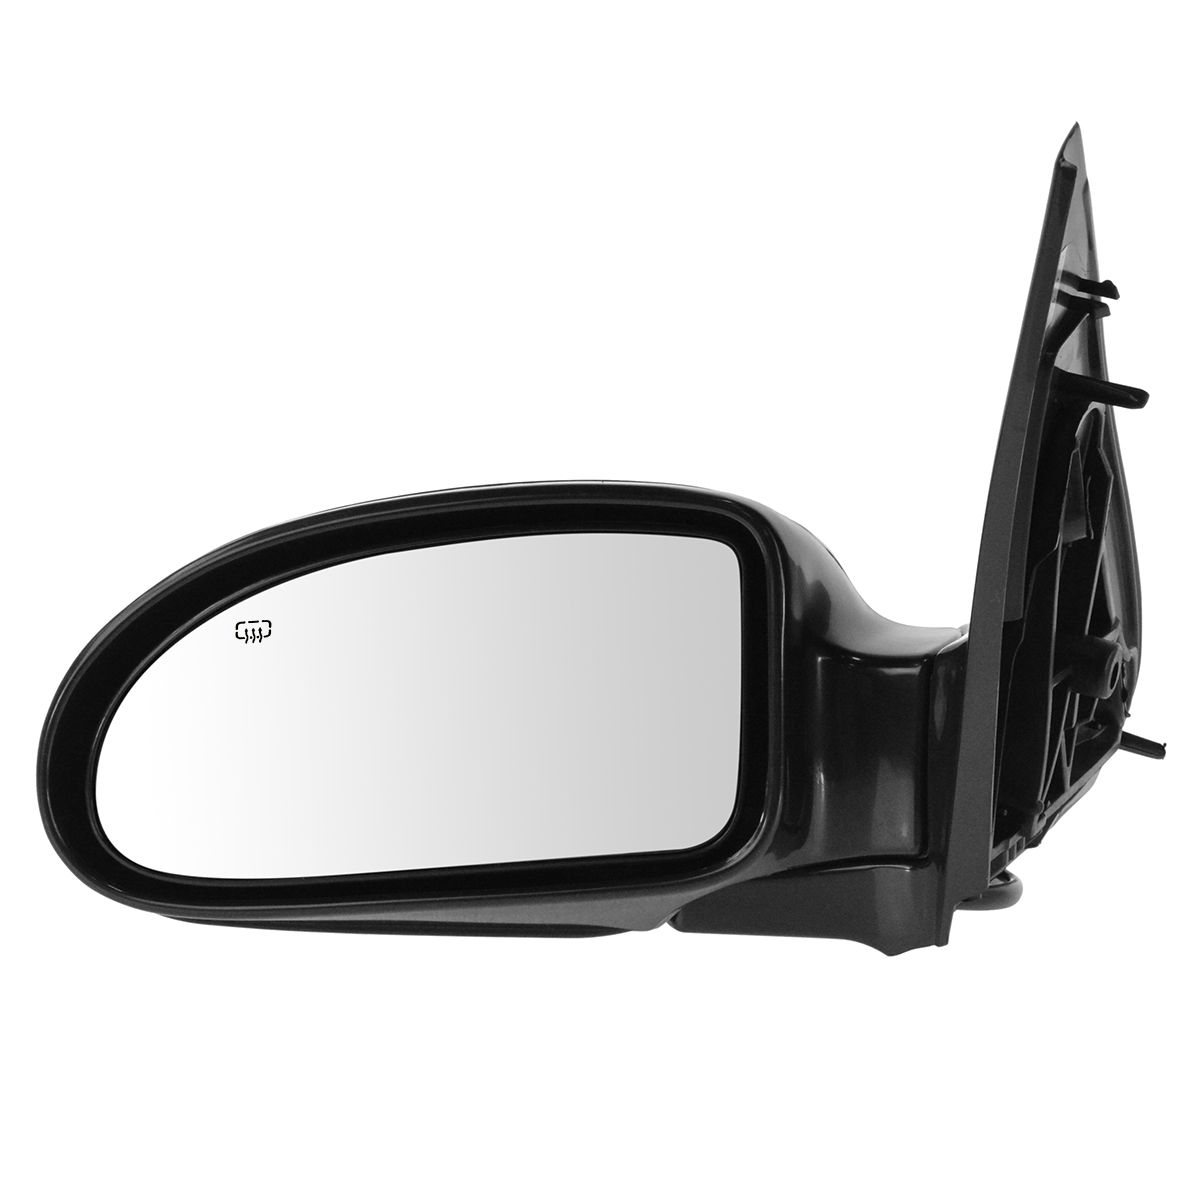 00-02 Dodge Neon Power Non-Heated Rear View Folding Mirror Left Driver Side LH